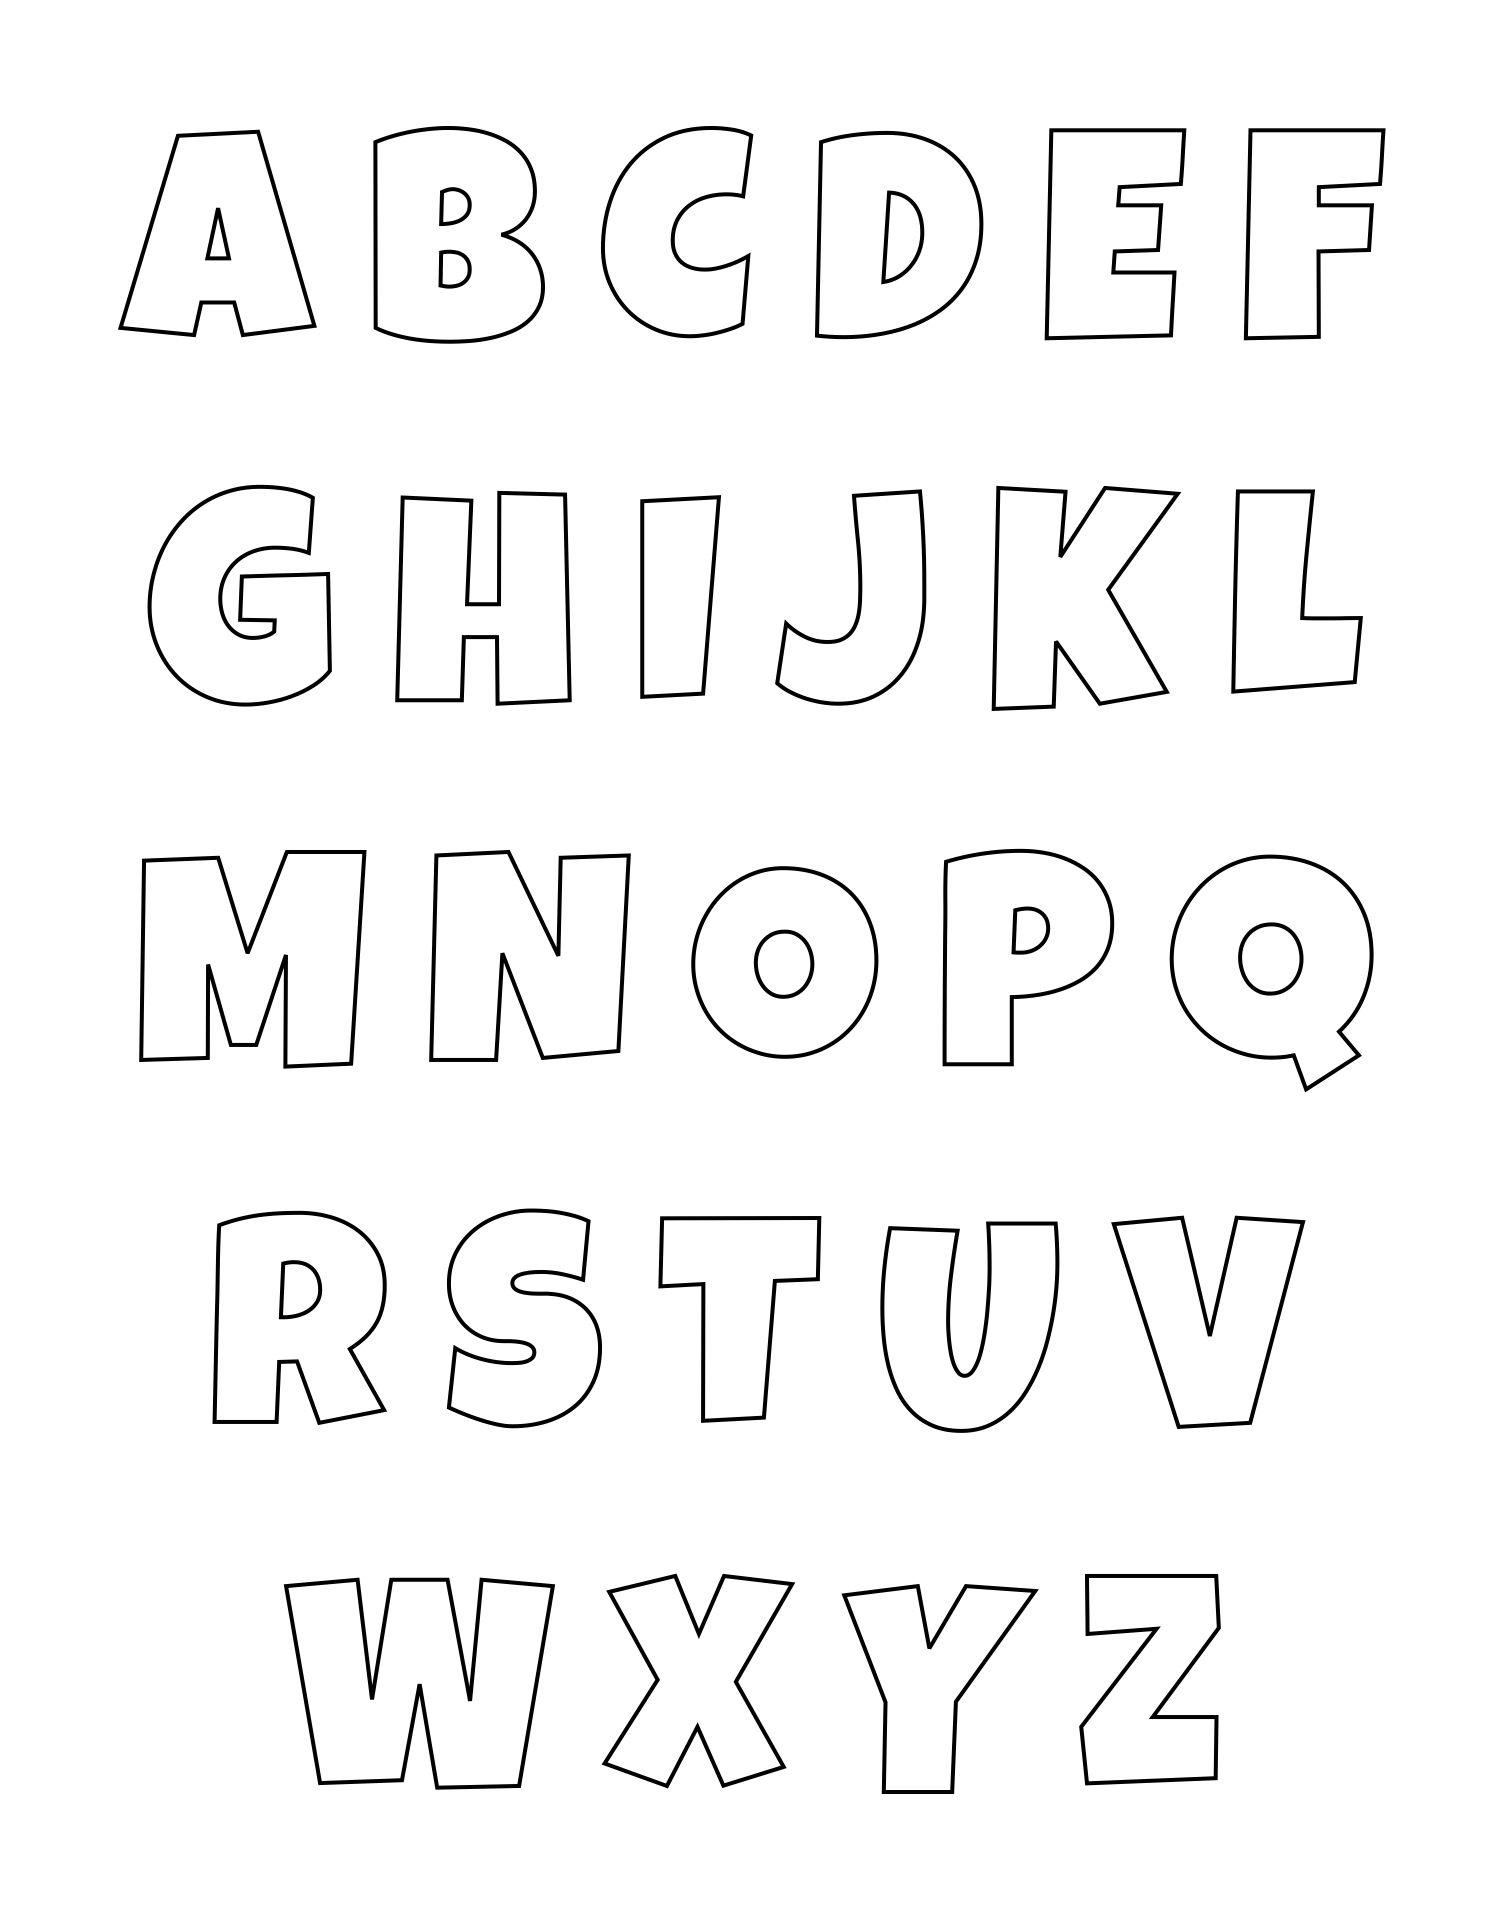 2-inch-printable-block-letters_328221  Inch Alphabet Letter Templates on for tracing, free printable large, for kids, medium printable,